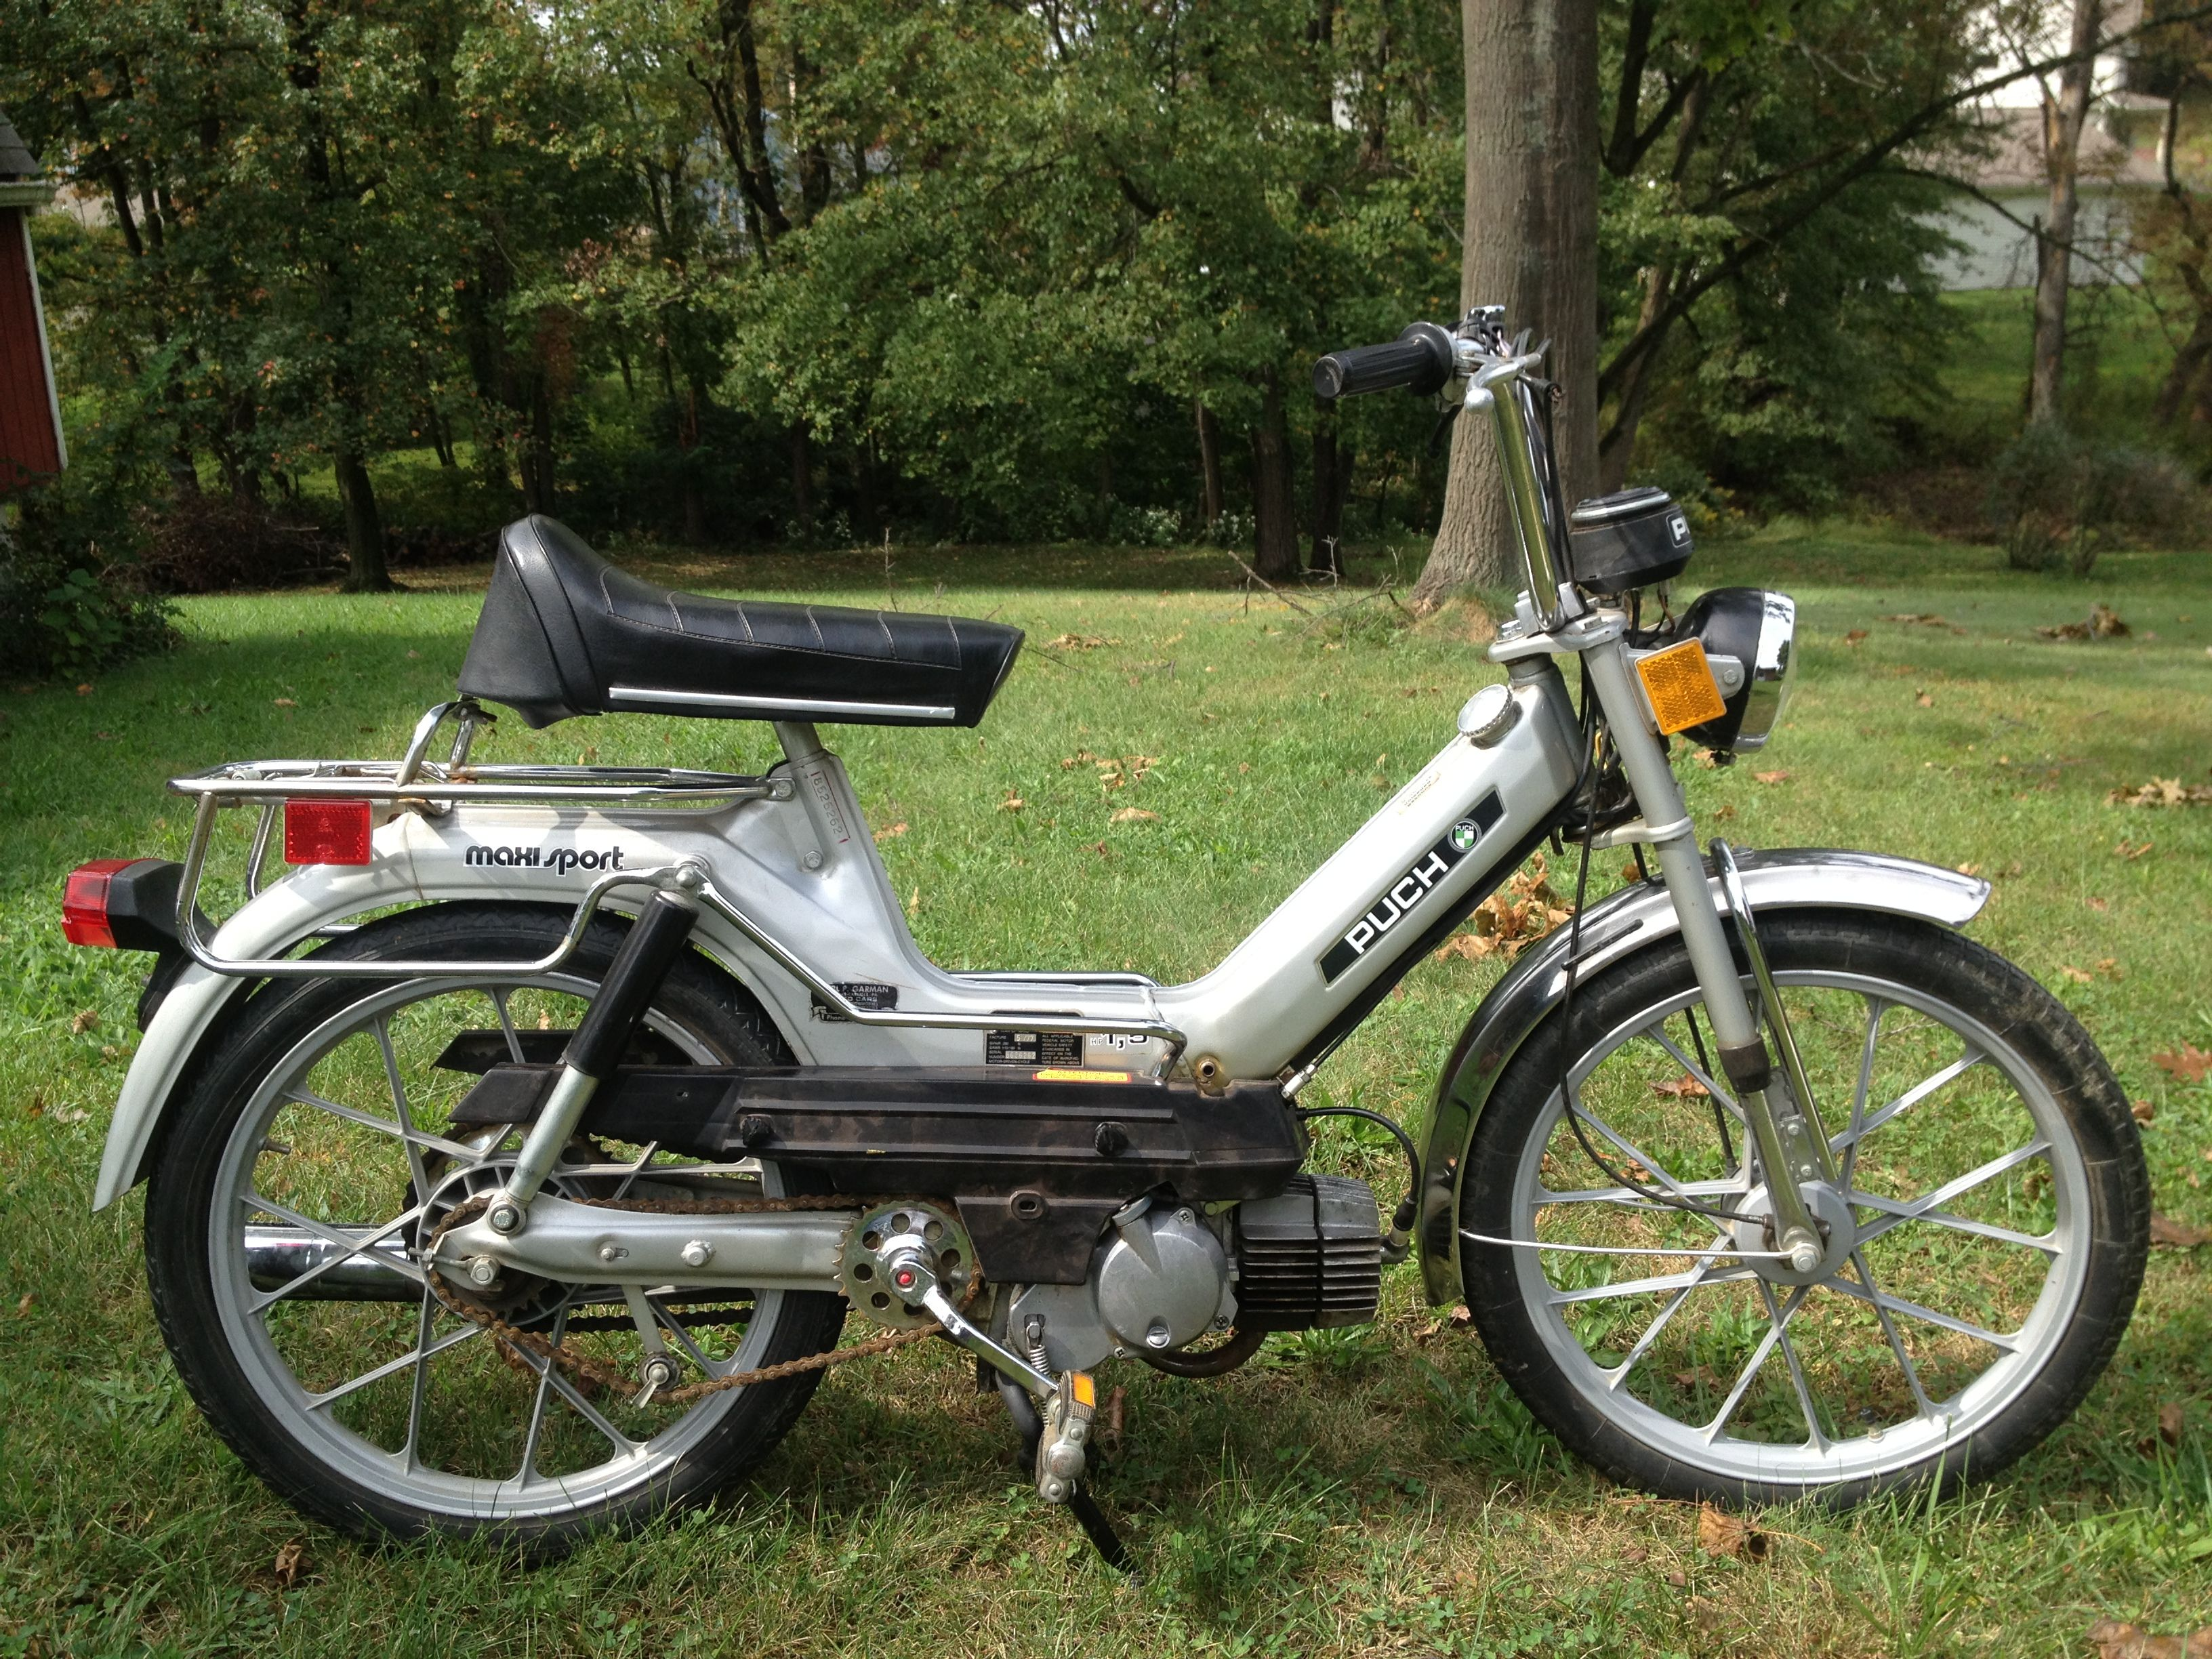 1977 Puch Maxi Sport Vintage Moped Moped Motorcycle Moped